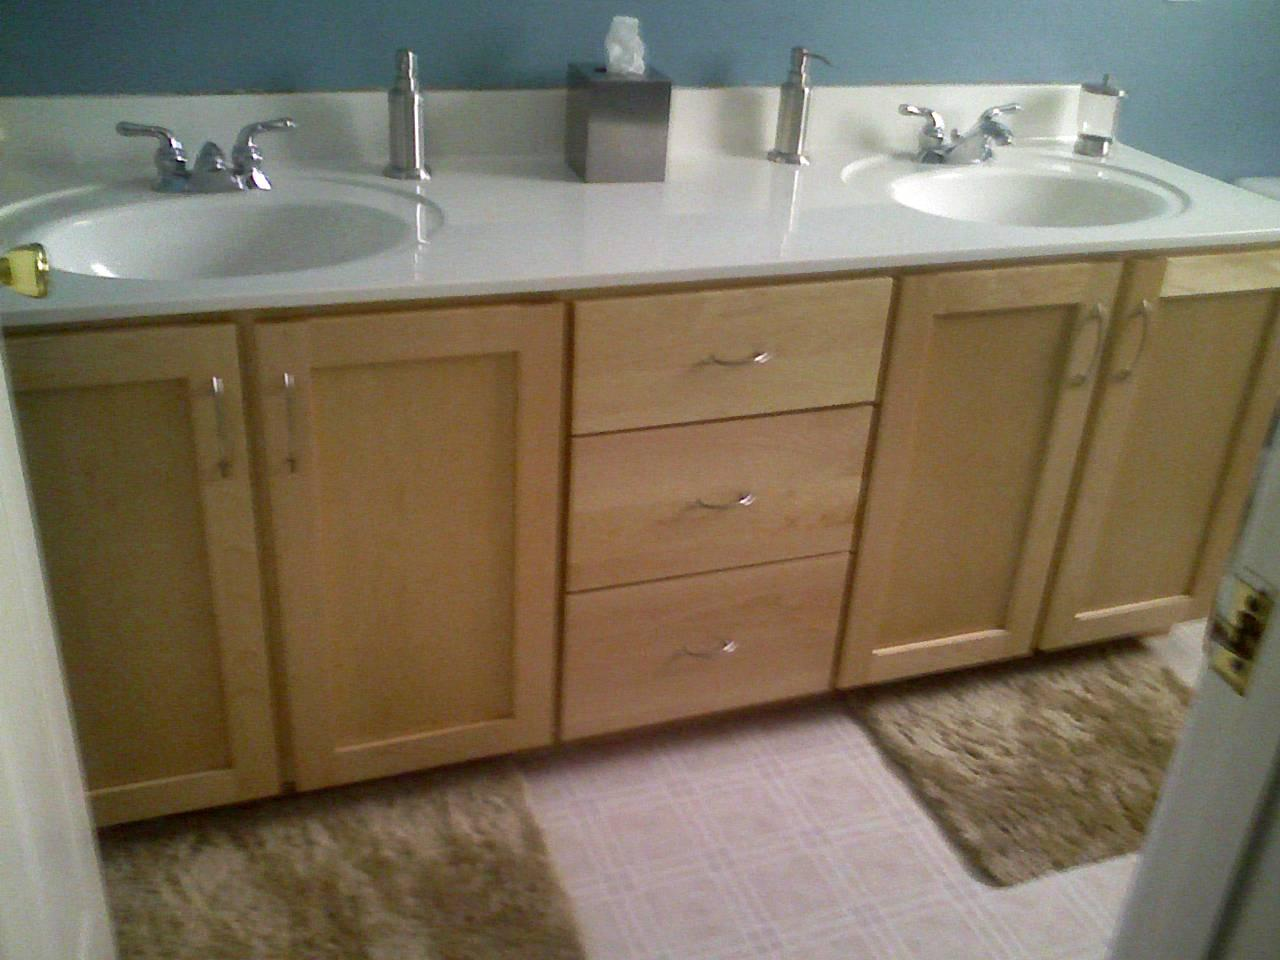 Bathroom cabinet refacing before and after - Custom Cabinets Refacing & Tops - Our Work